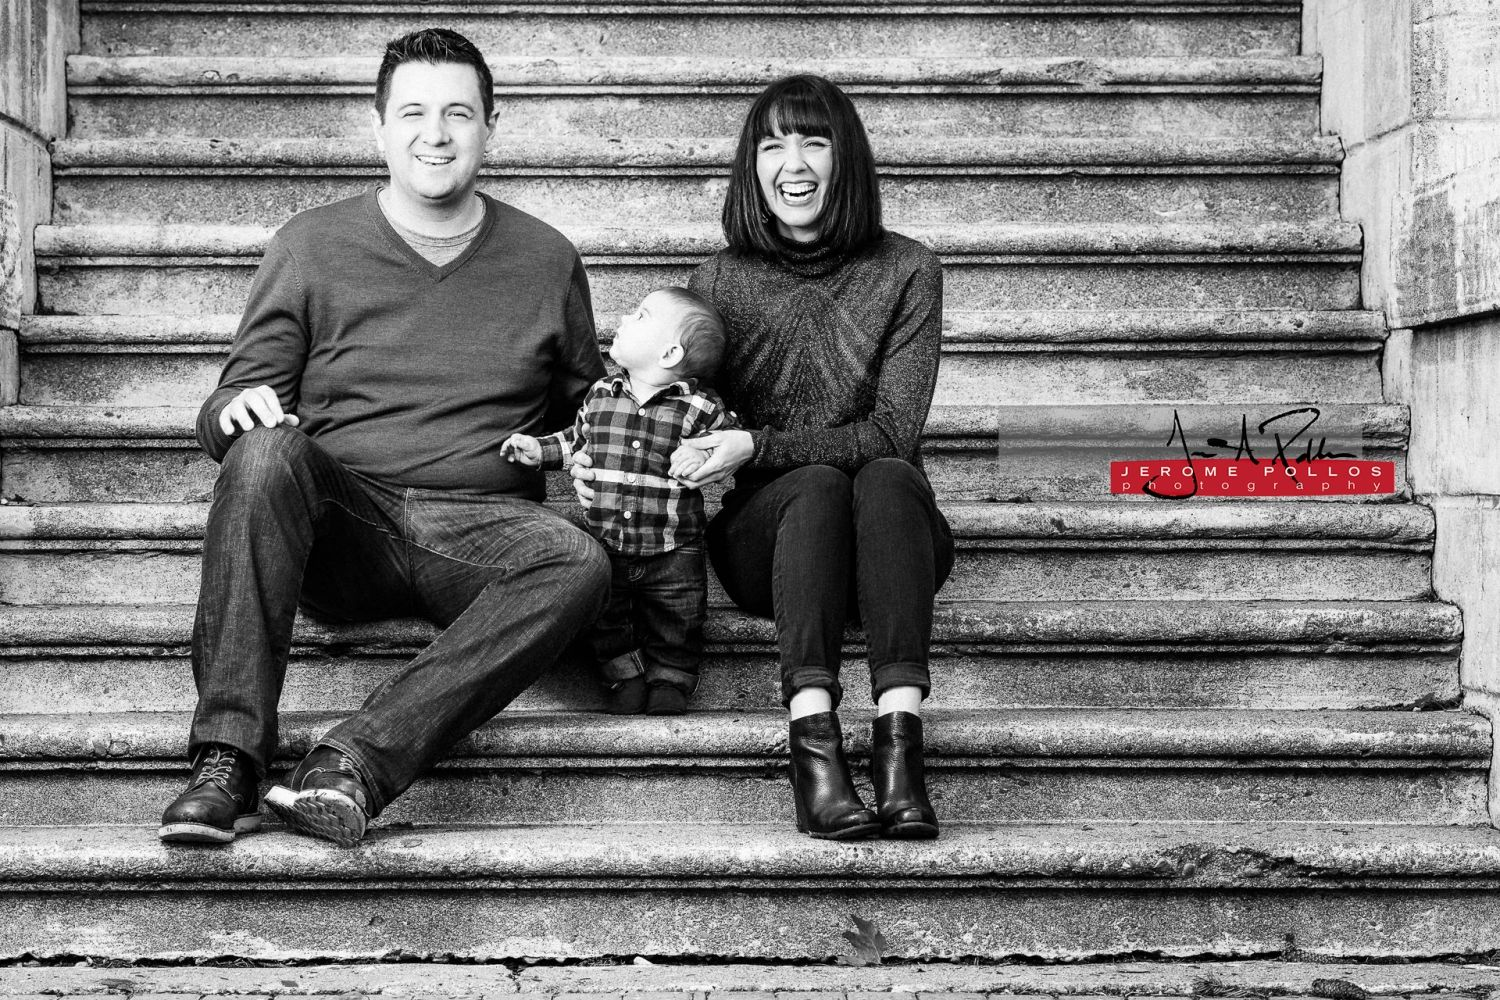 Patrick is trying to figure out what's so funny as his parents have a laugh while Sitting on the steps of College Hall. #portrait #family #spokane #washington #parents #child #laughter #steps #blackandwhite